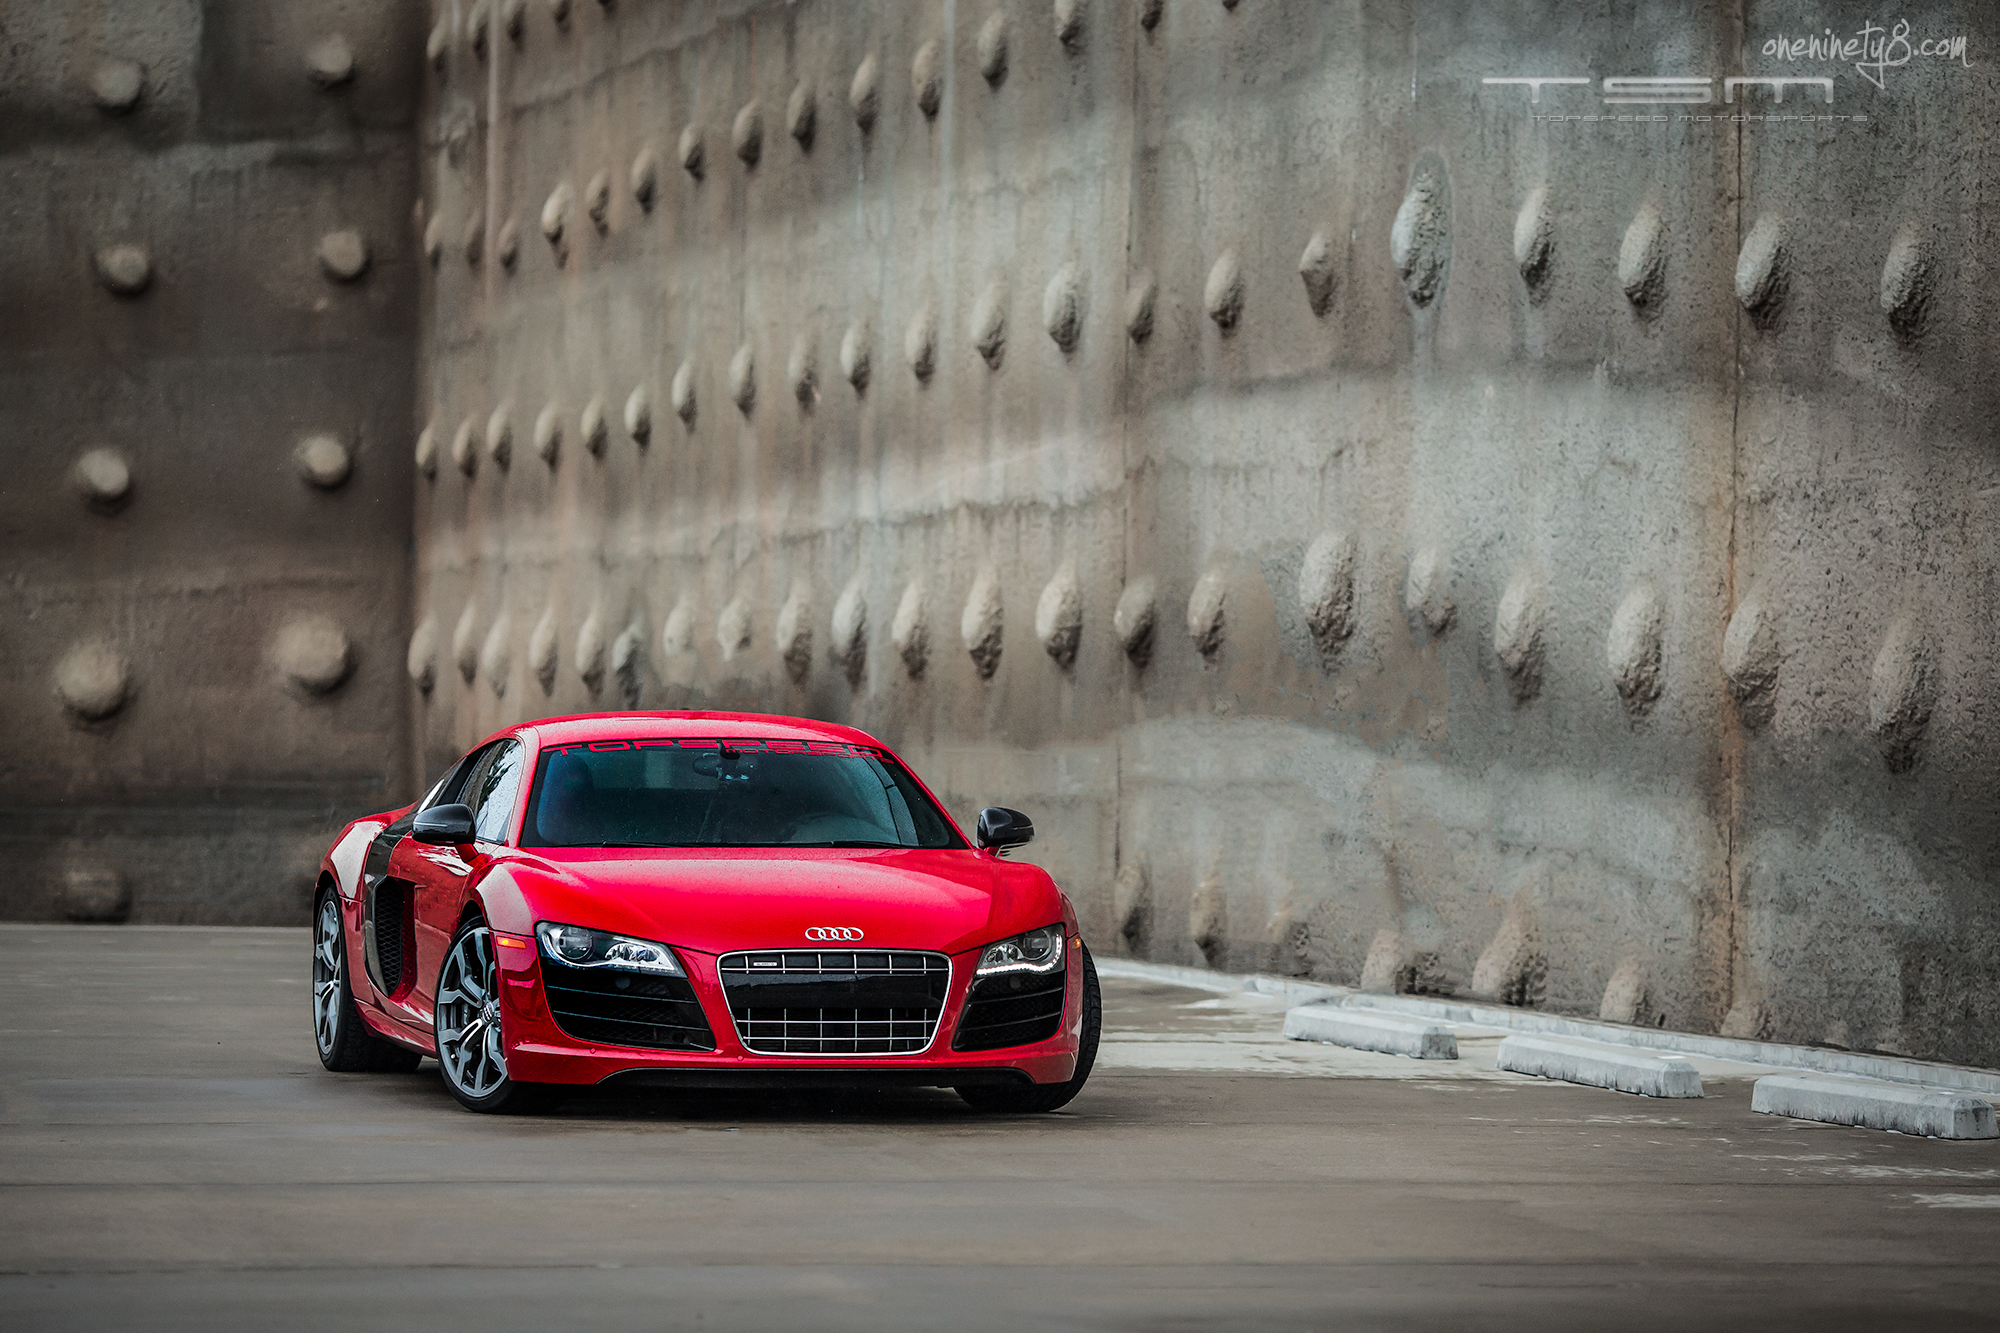 Having A Little Bit Of Fun With An Audi R8 Robb Sutton